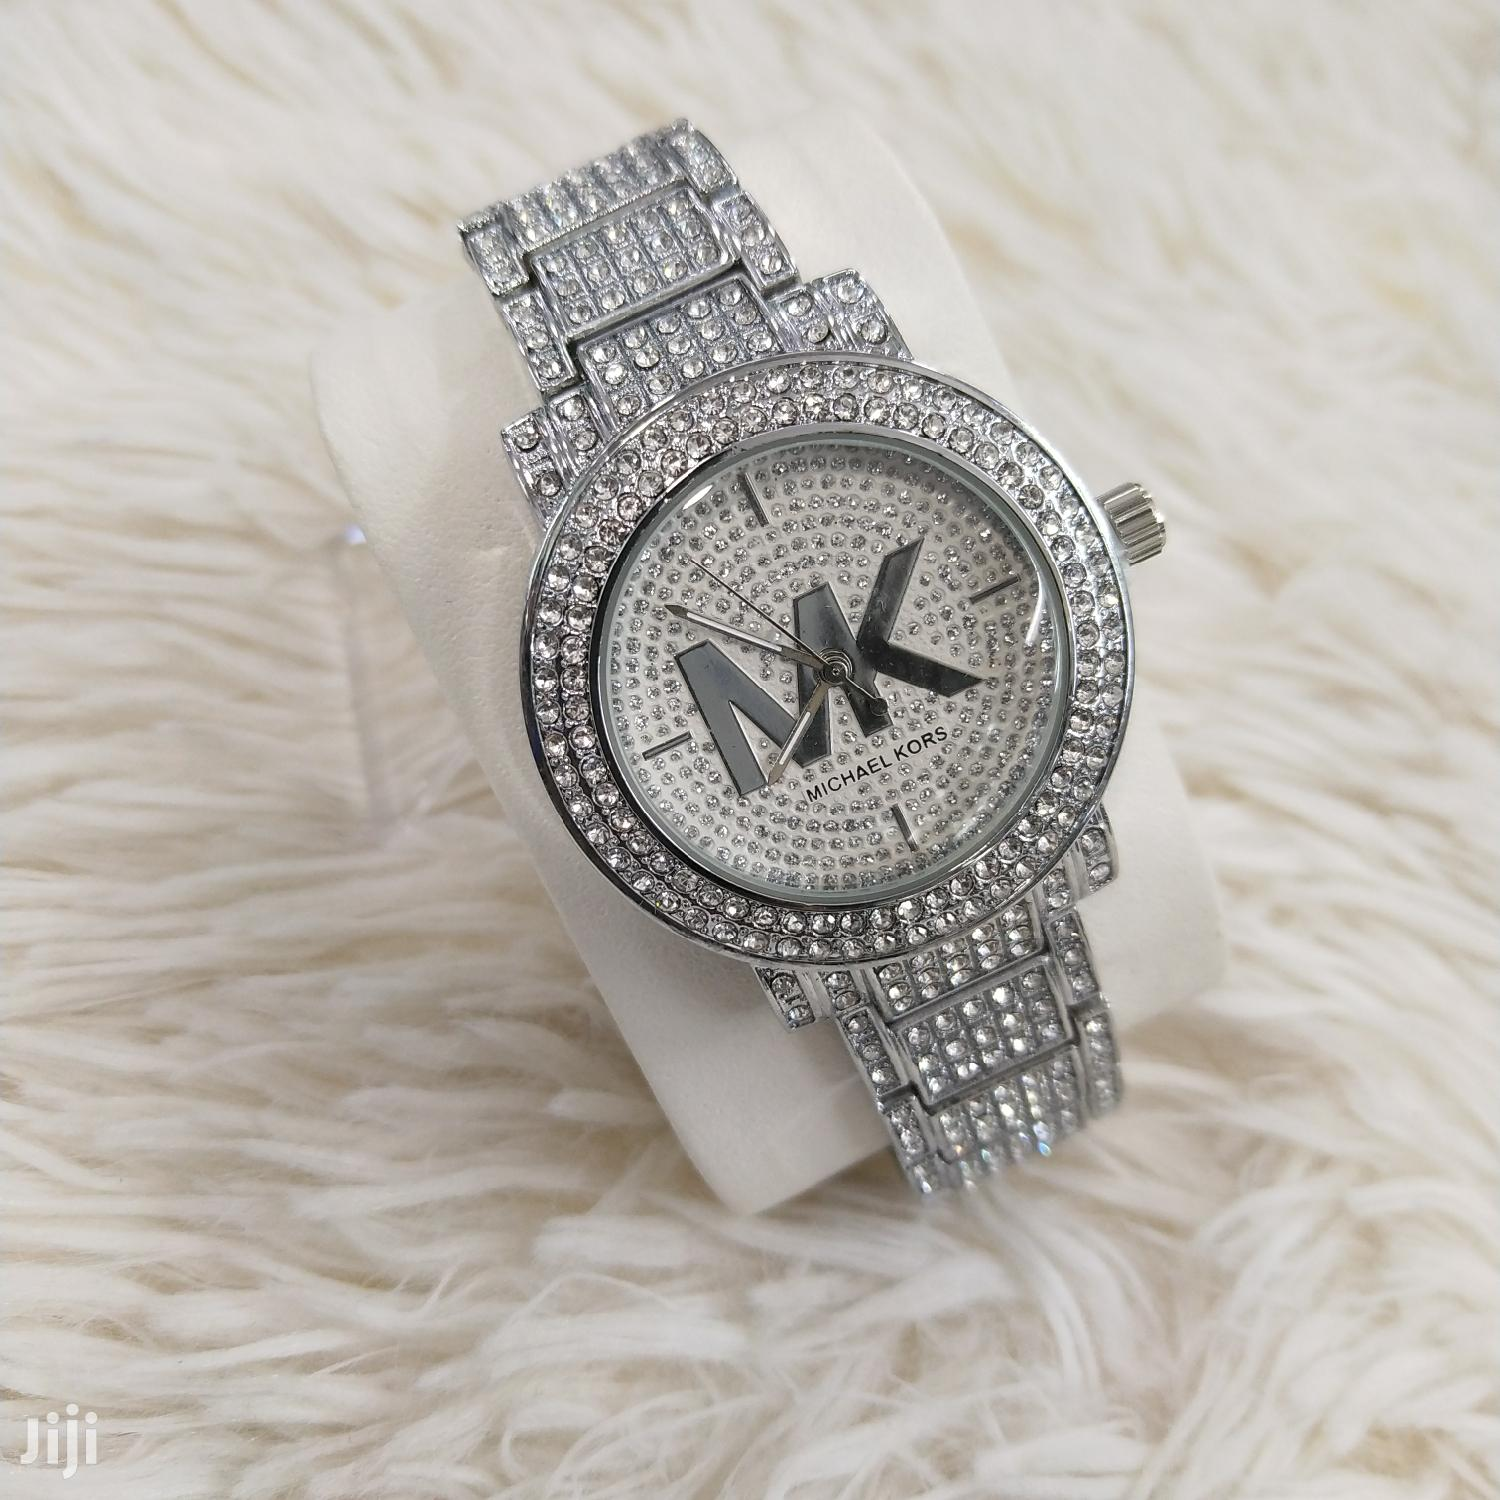 Iced Out Ladies Wrist Watch | Watches for sale in Nairobi Central, Nairobi, Kenya